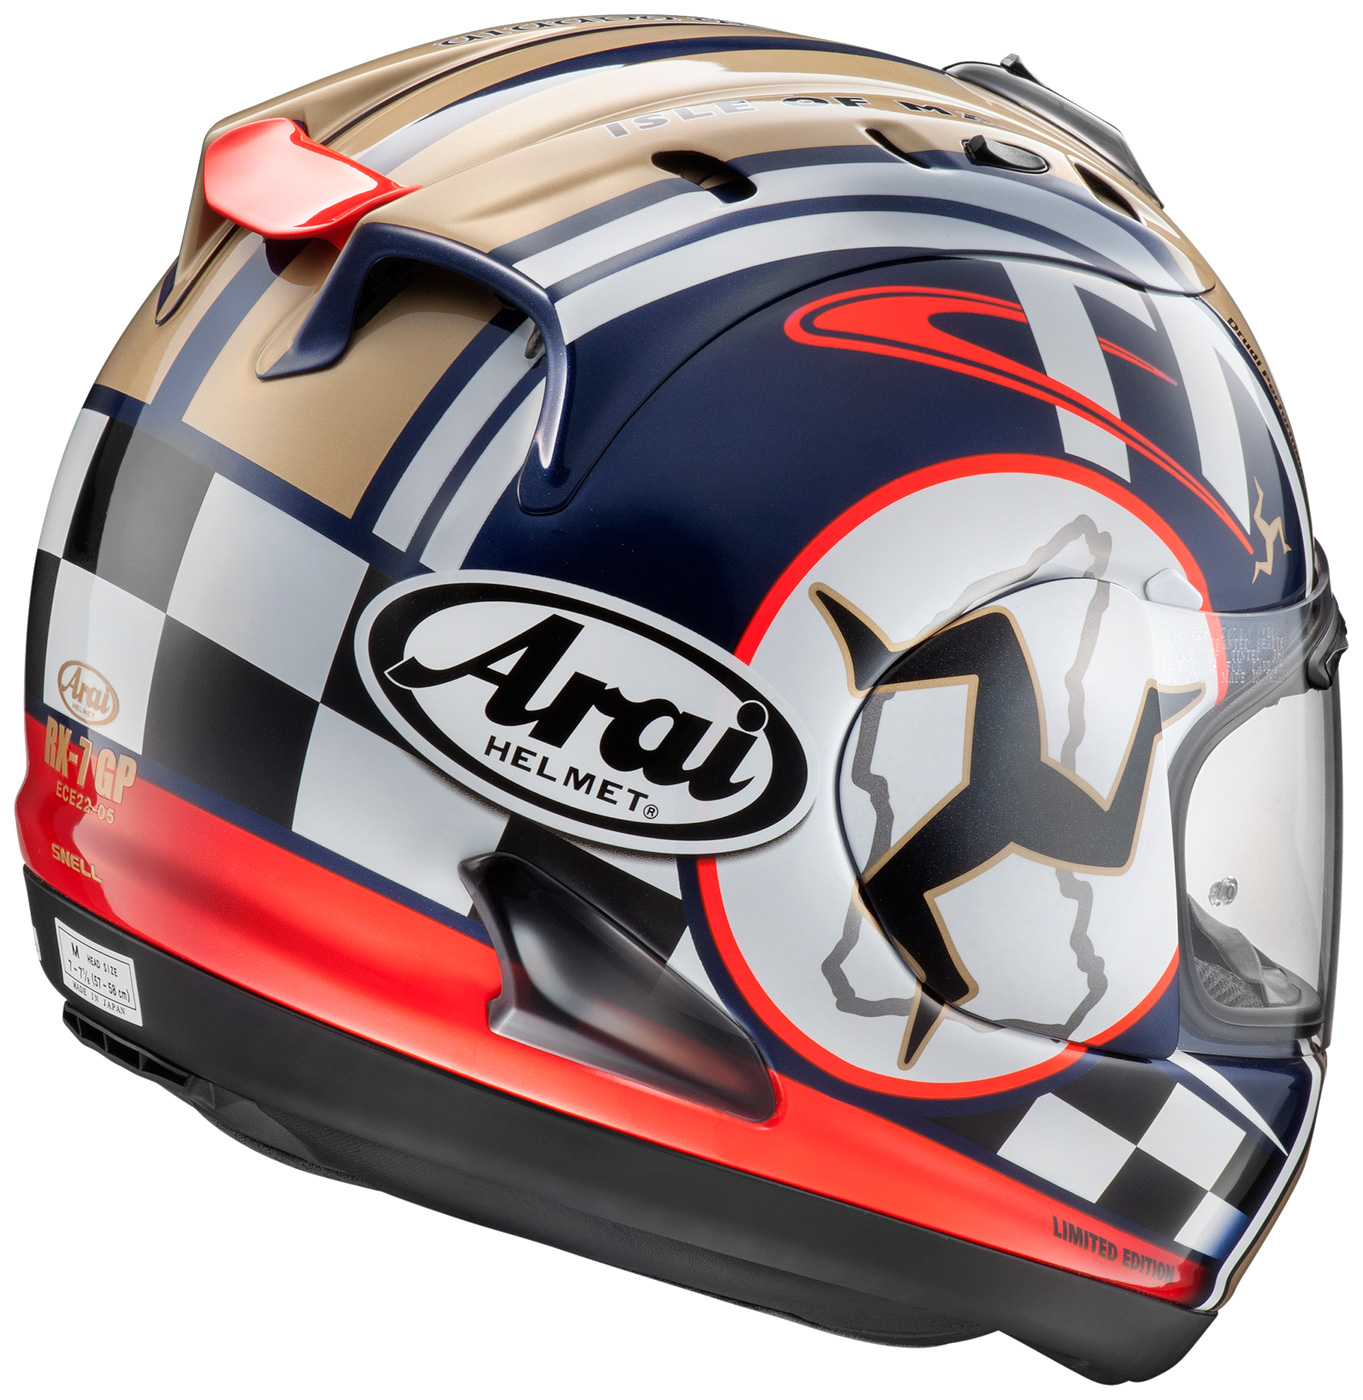 casque arai rx 7 gp isle of man tt 2015 edition agora moto. Black Bedroom Furniture Sets. Home Design Ideas